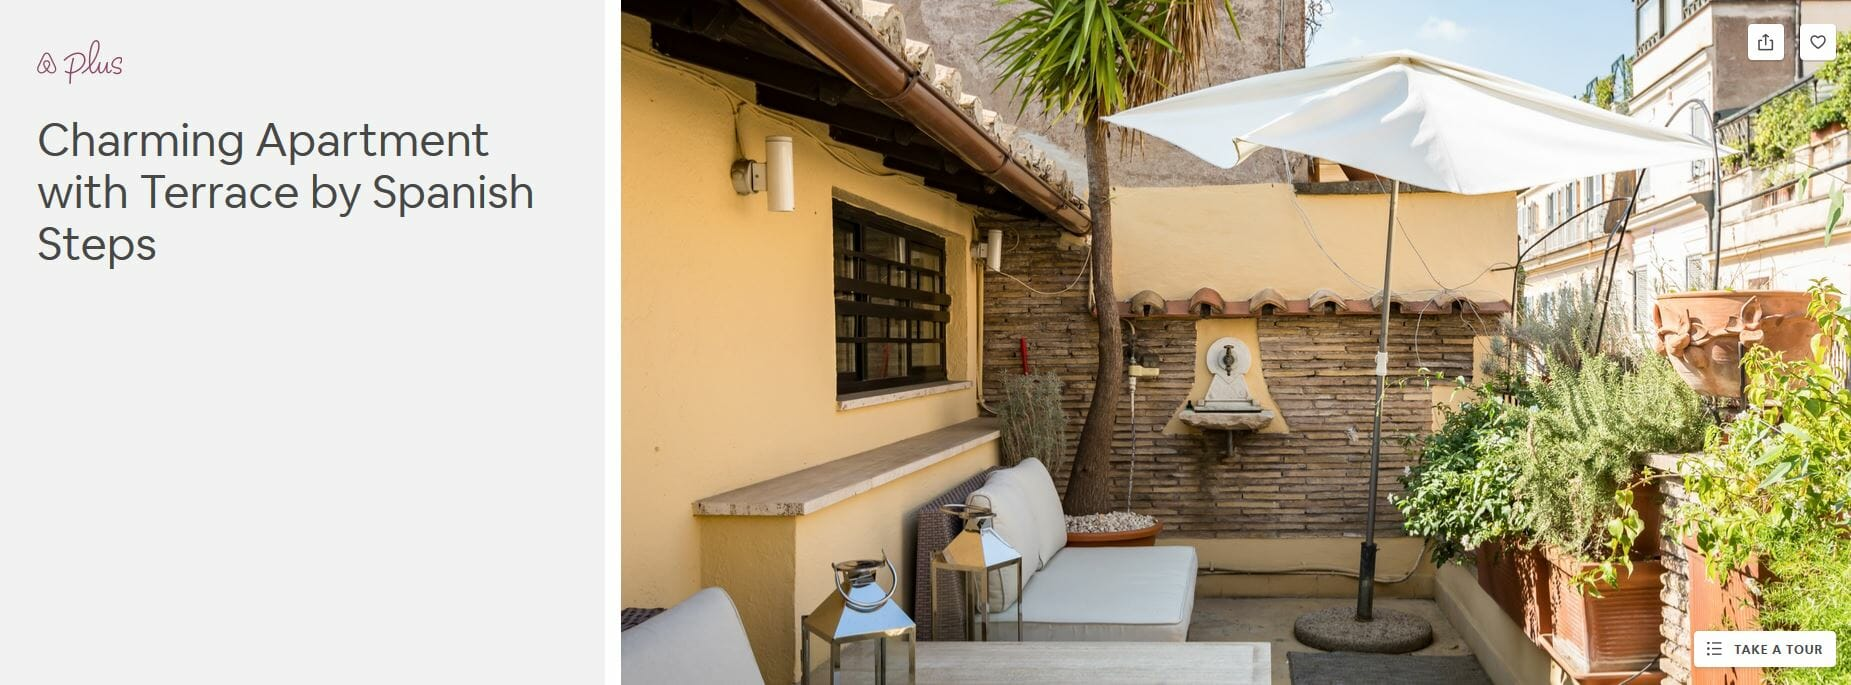 best airbnbs rome Charming Appartement with Terrace